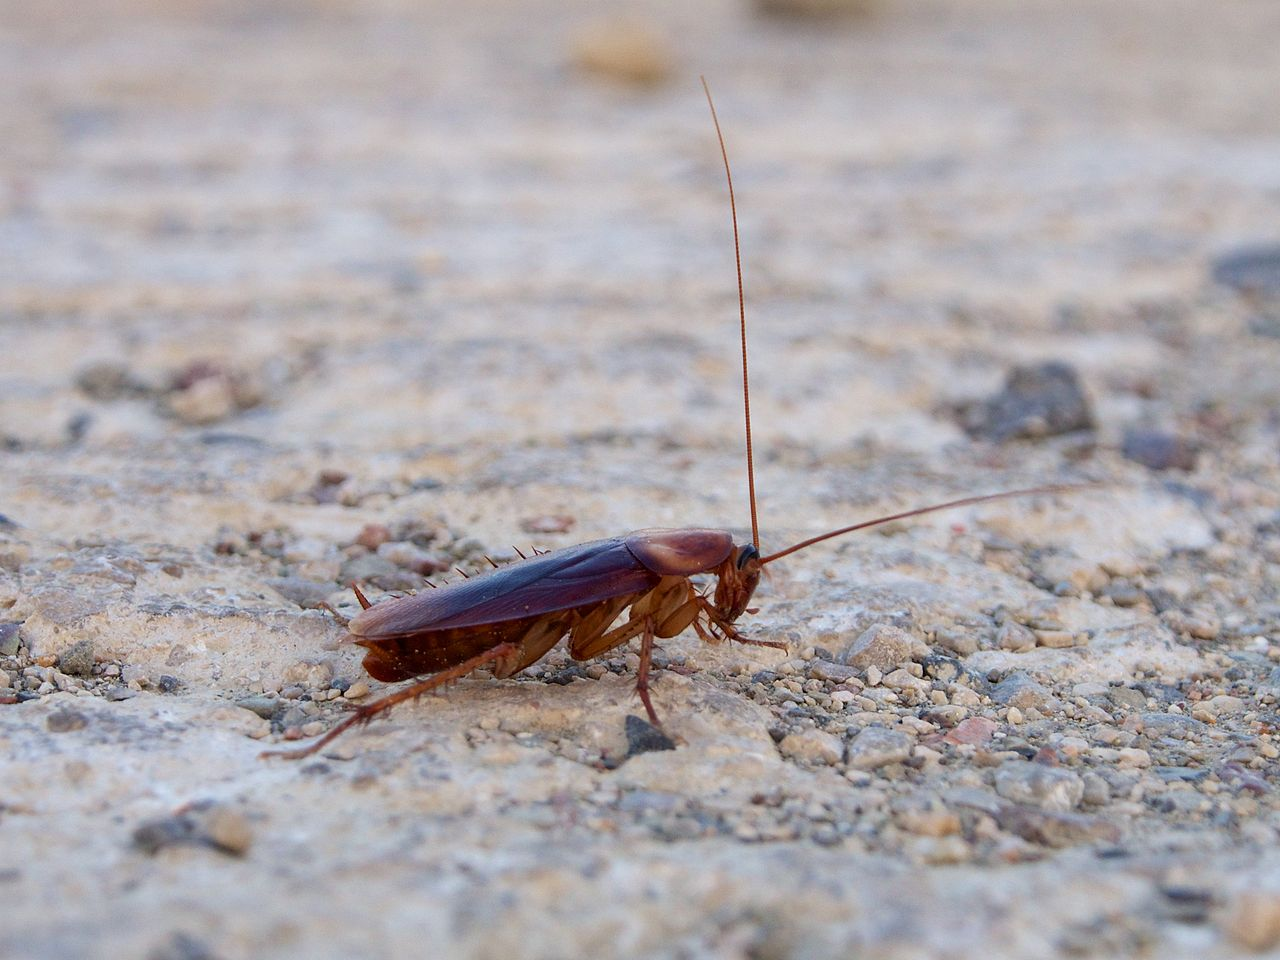 DIY Roach Removal: Best Ways to Get Rid of Roaches in Your Apartment